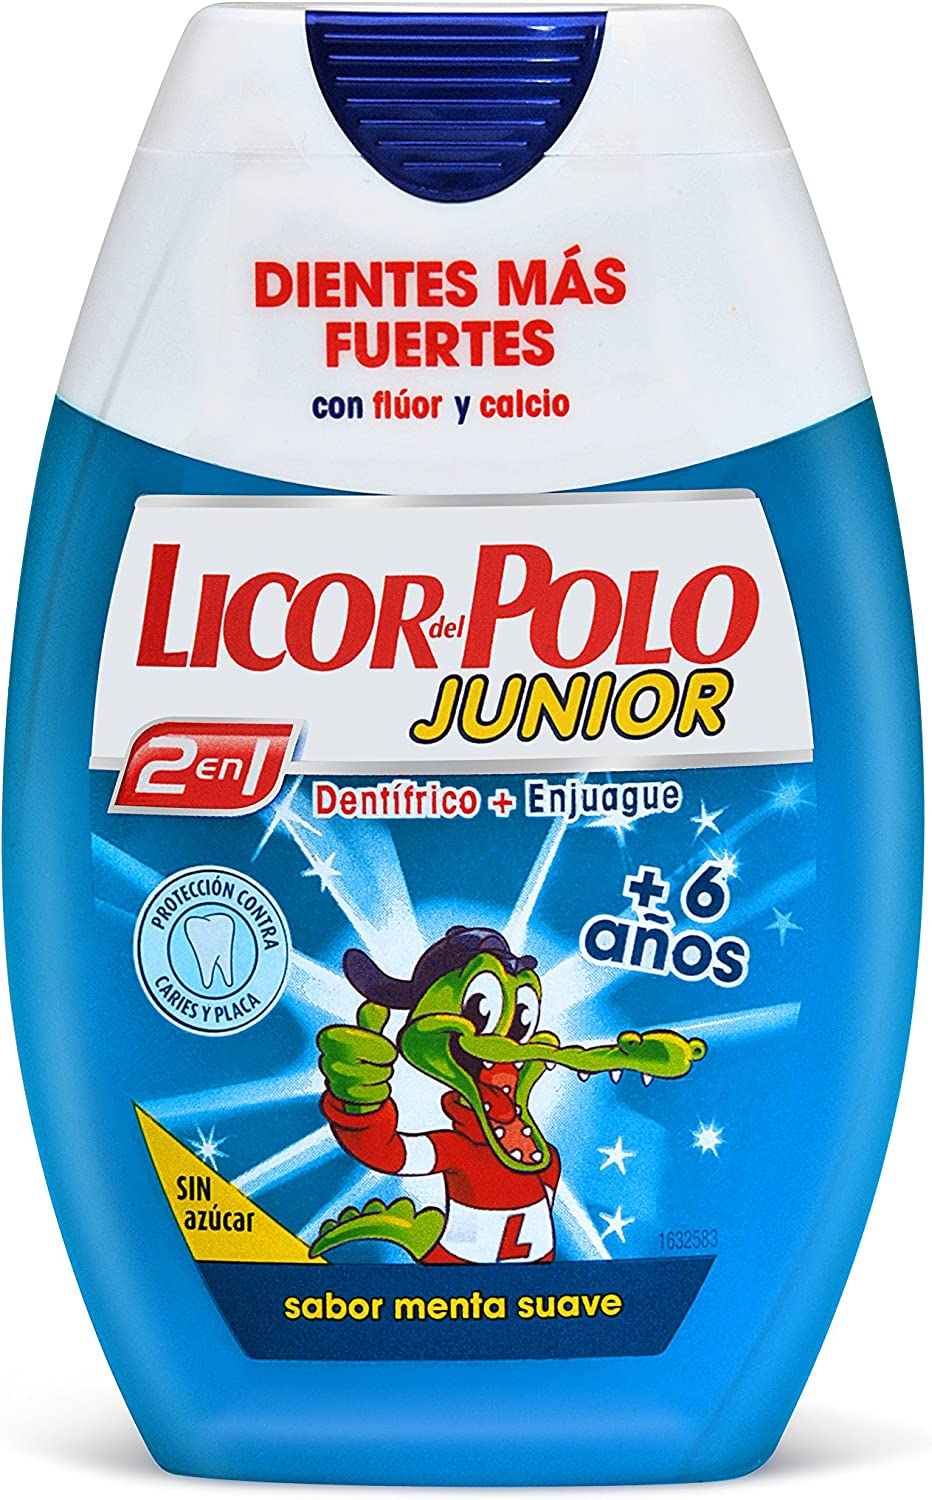 Licor del Polo Dentífrico + Enjuague 2 en 1 +6 Años Menta - 75 ml ...